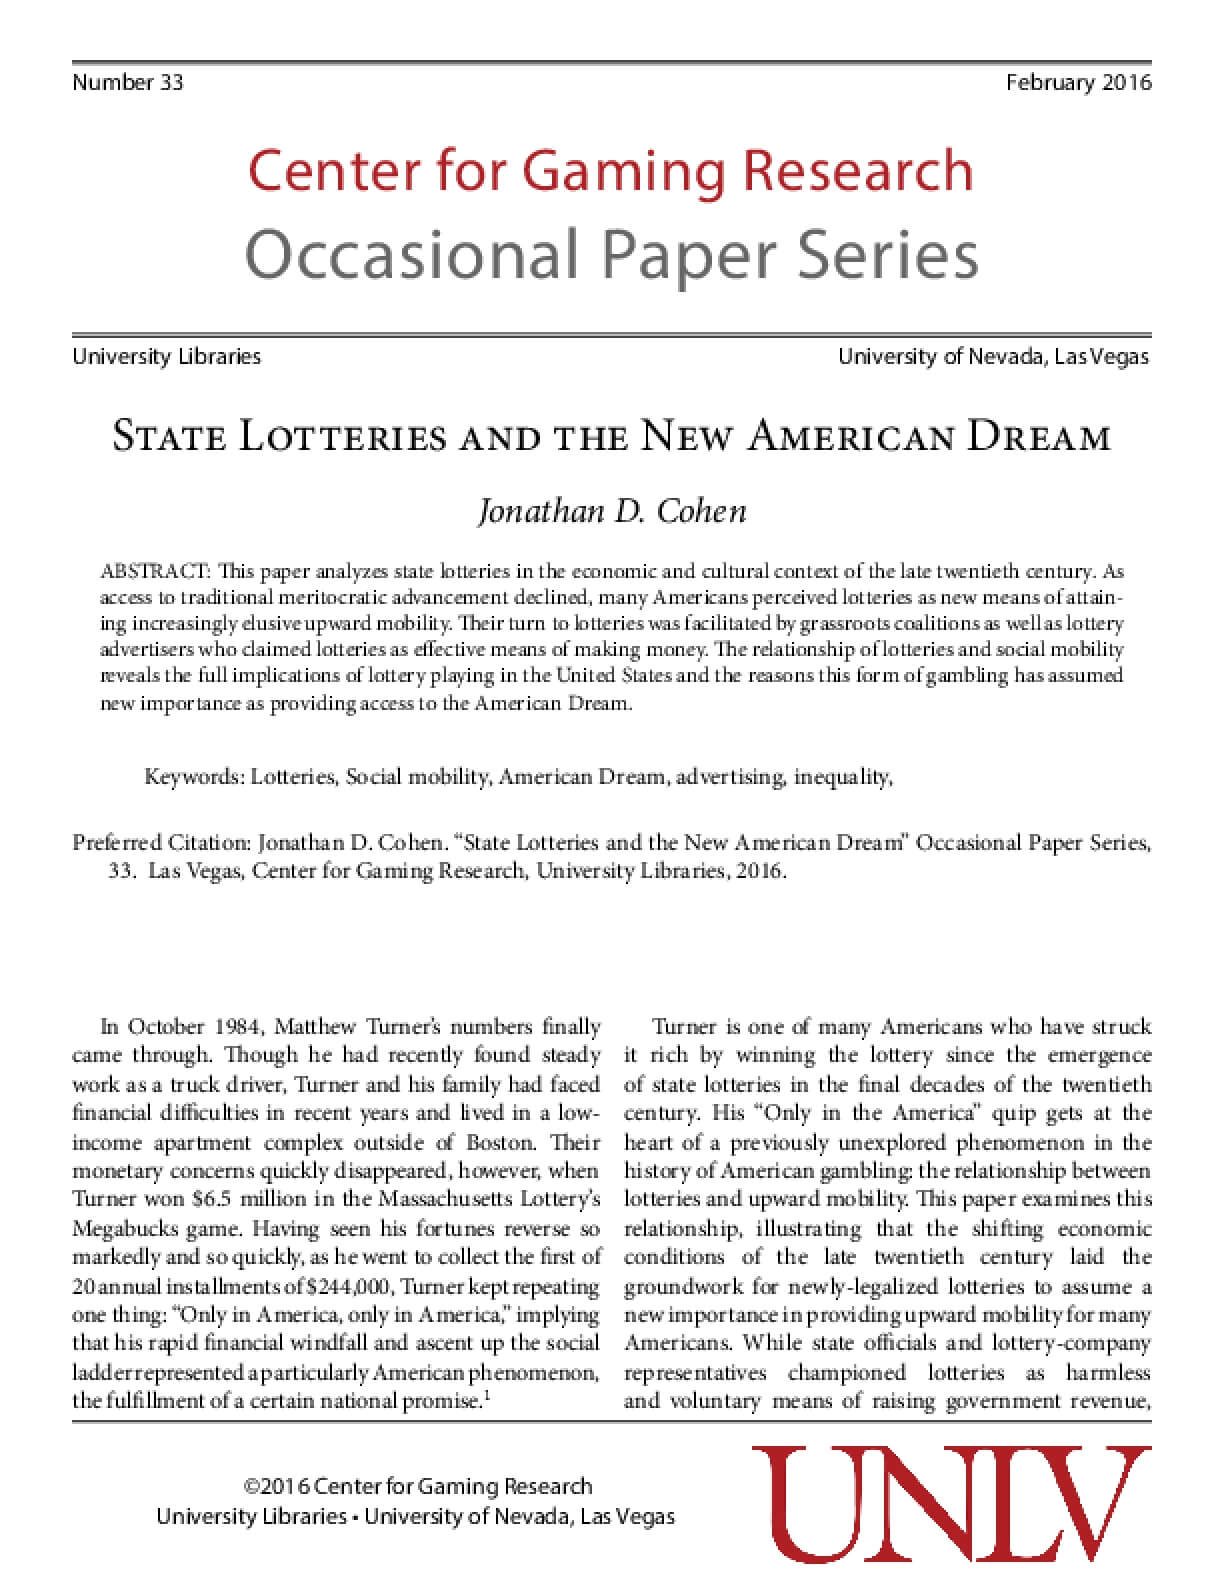 State Lotteries and the New American Dream